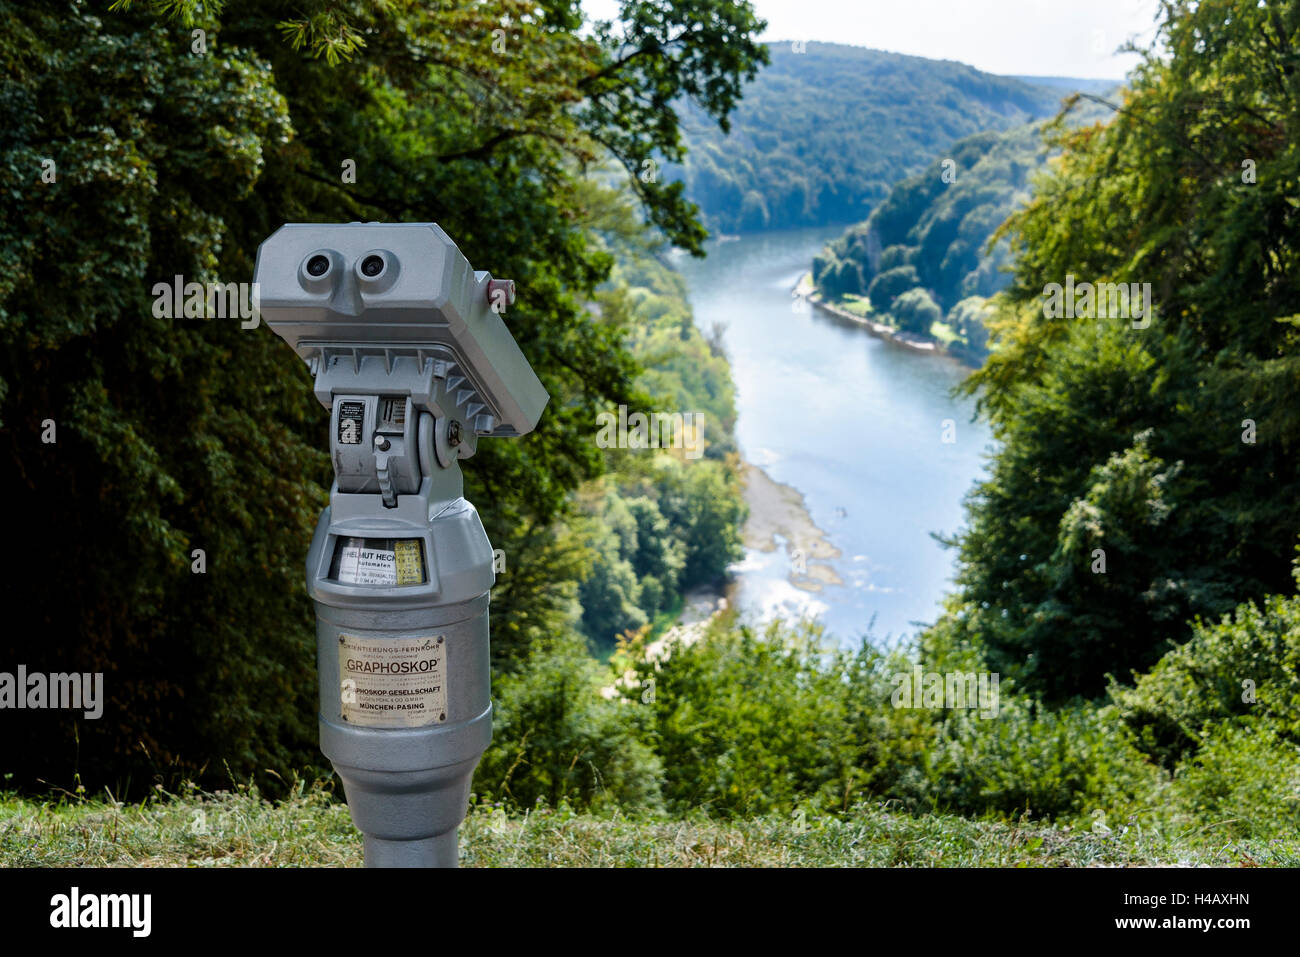 Coin operated viewer overlooking the river Danube. - Stock Image